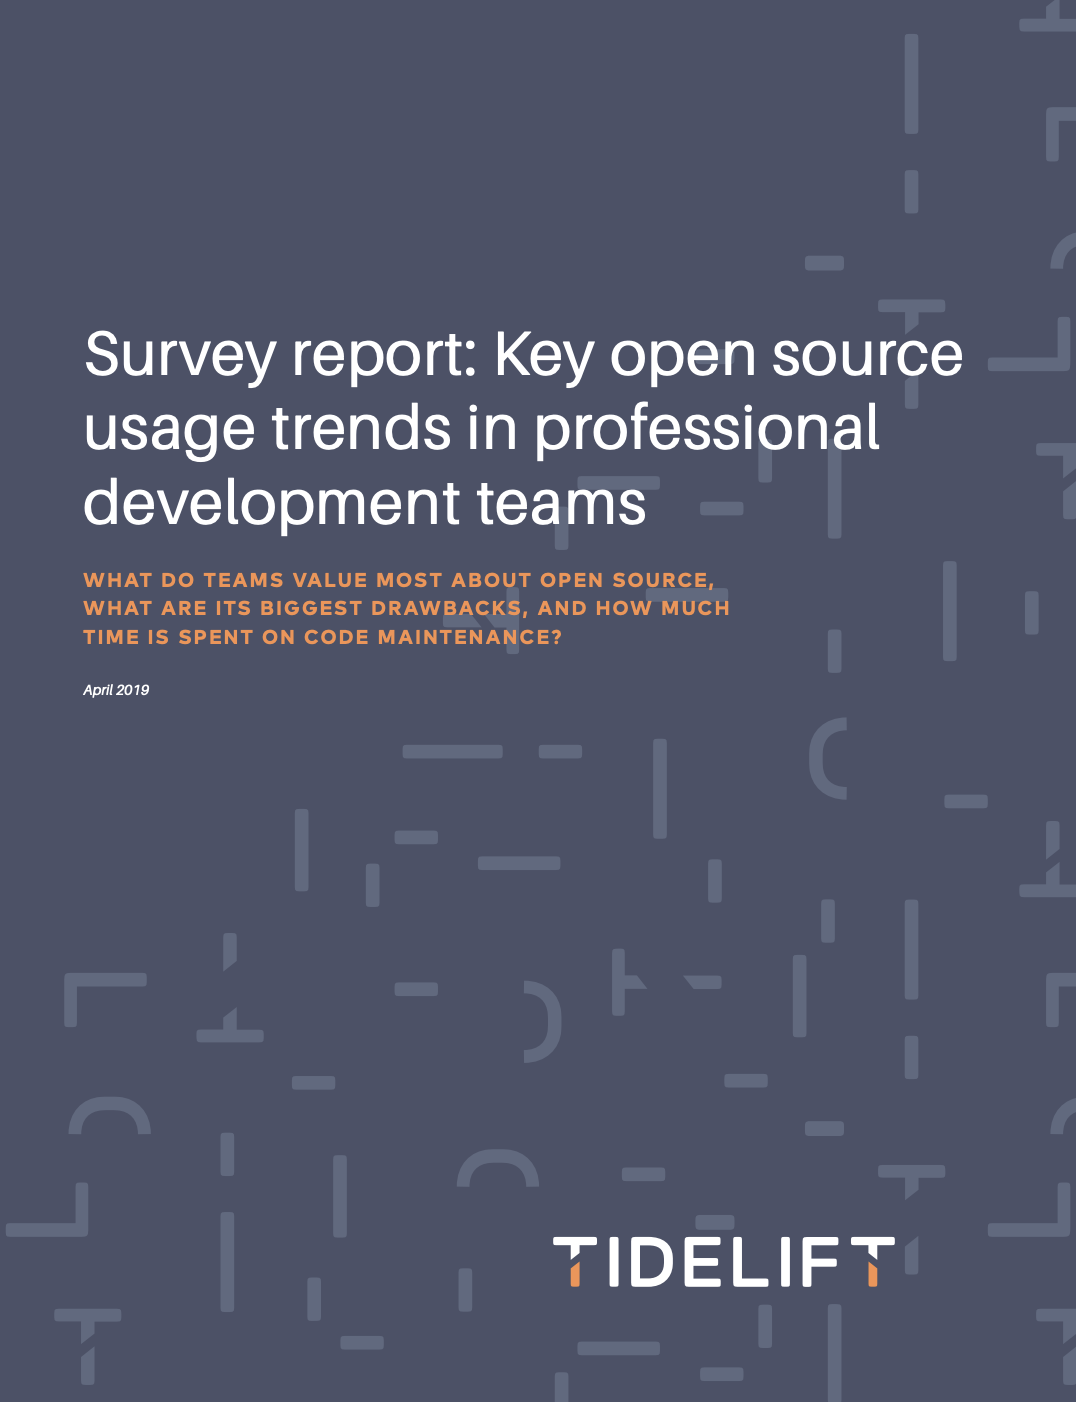 Key open source usage trends in professional development teams